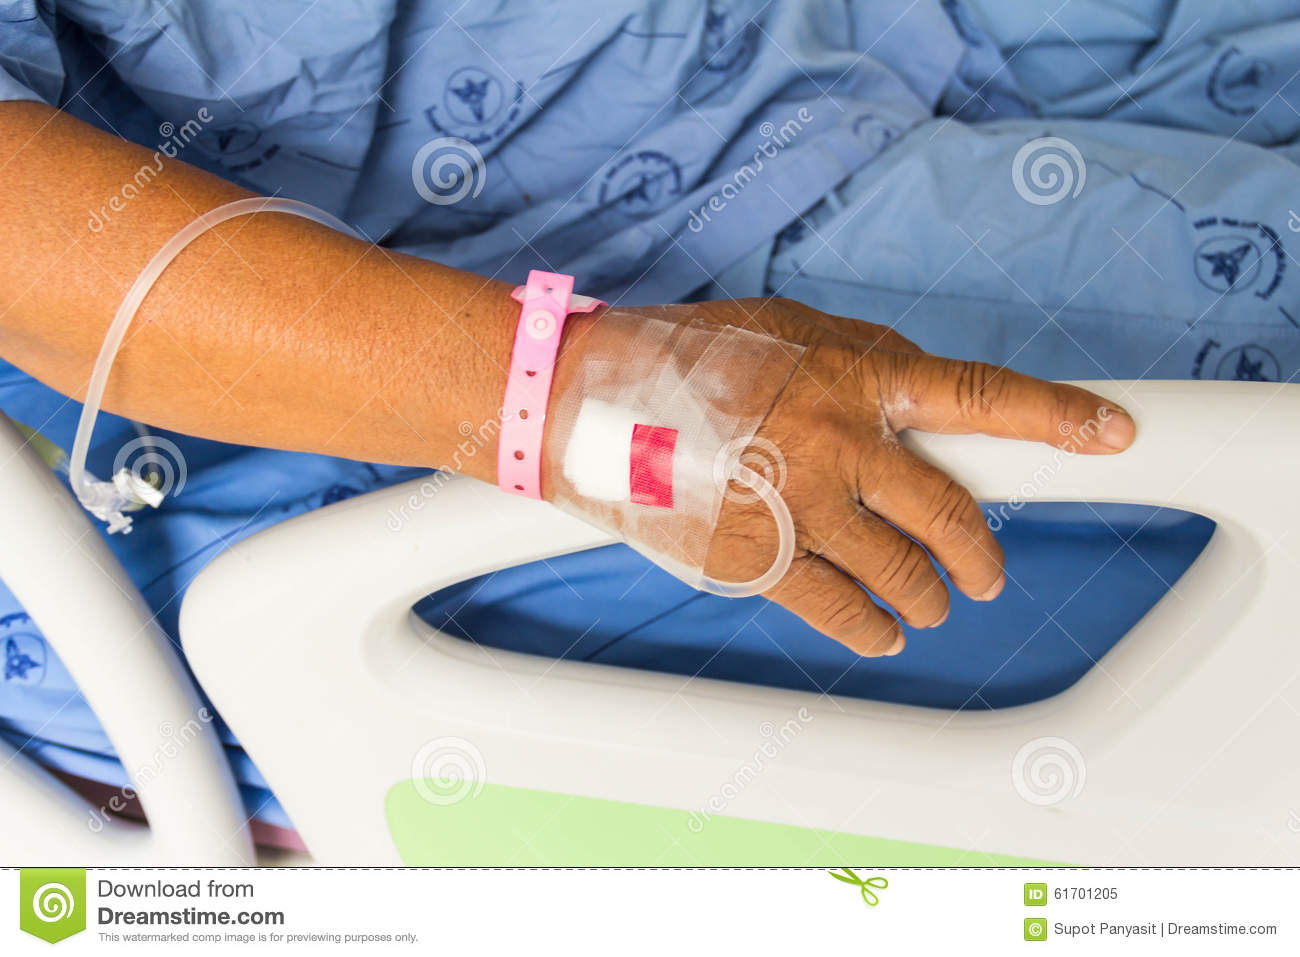 Water bed for patients - Sick Patient Lying On Bed In Hospital For Medical Royalty Free Stock Photo